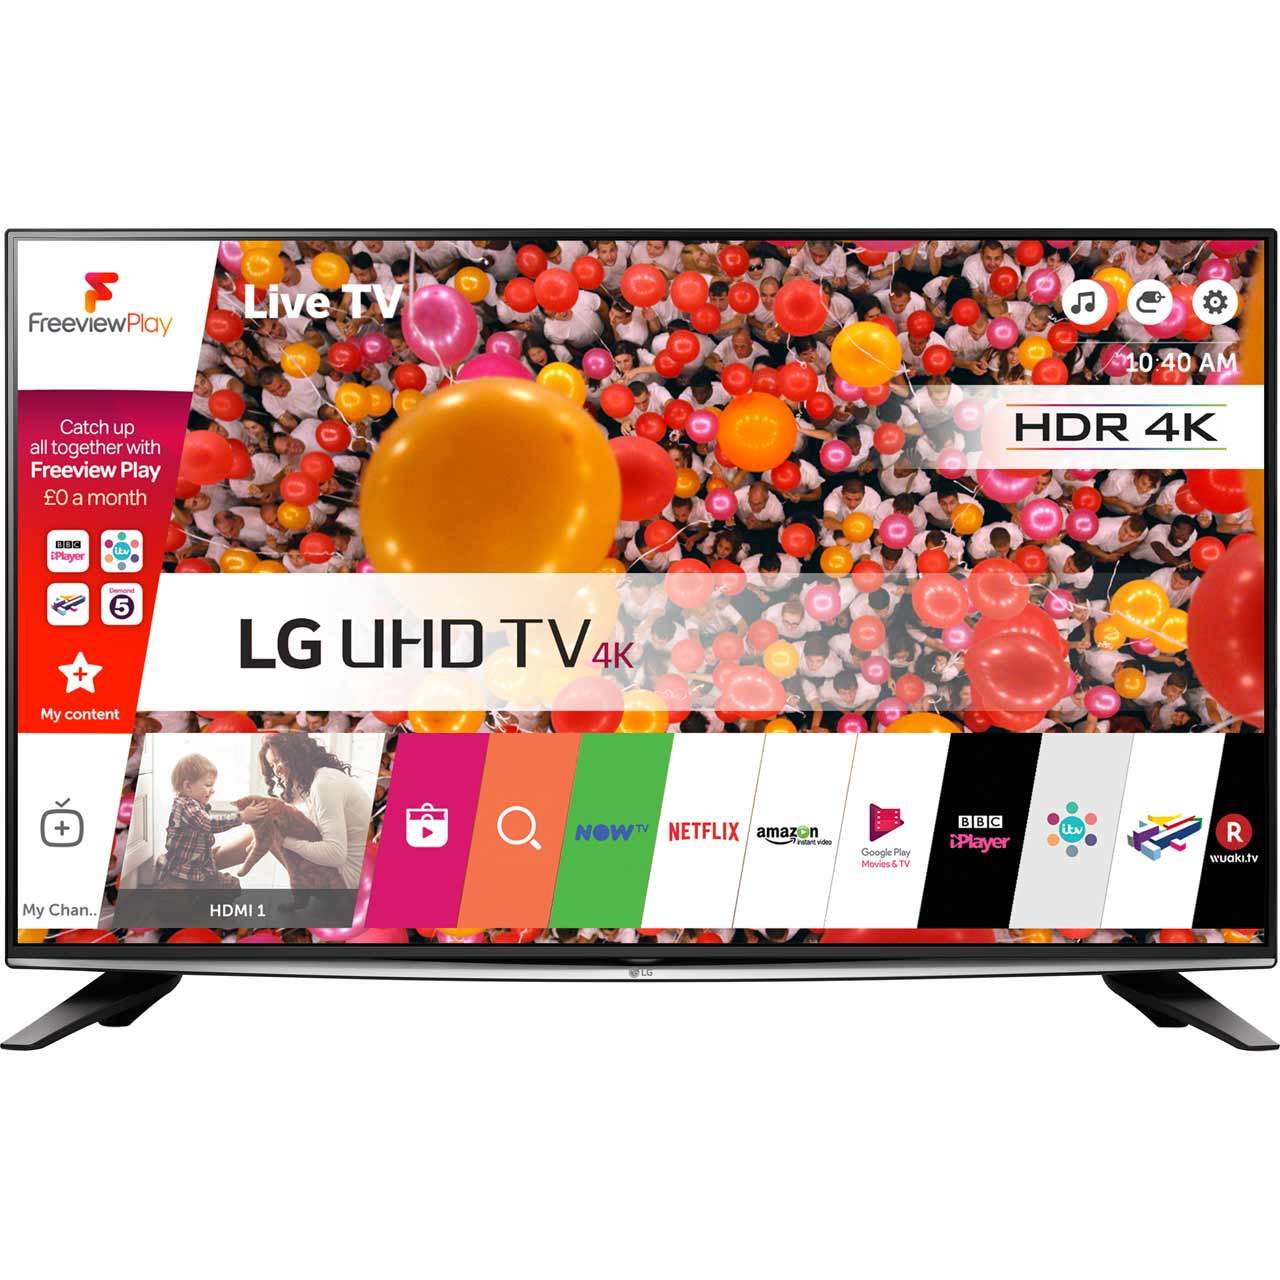 LG 58UH635V Freeview Play Smart 4K Ultra HDR TV Review